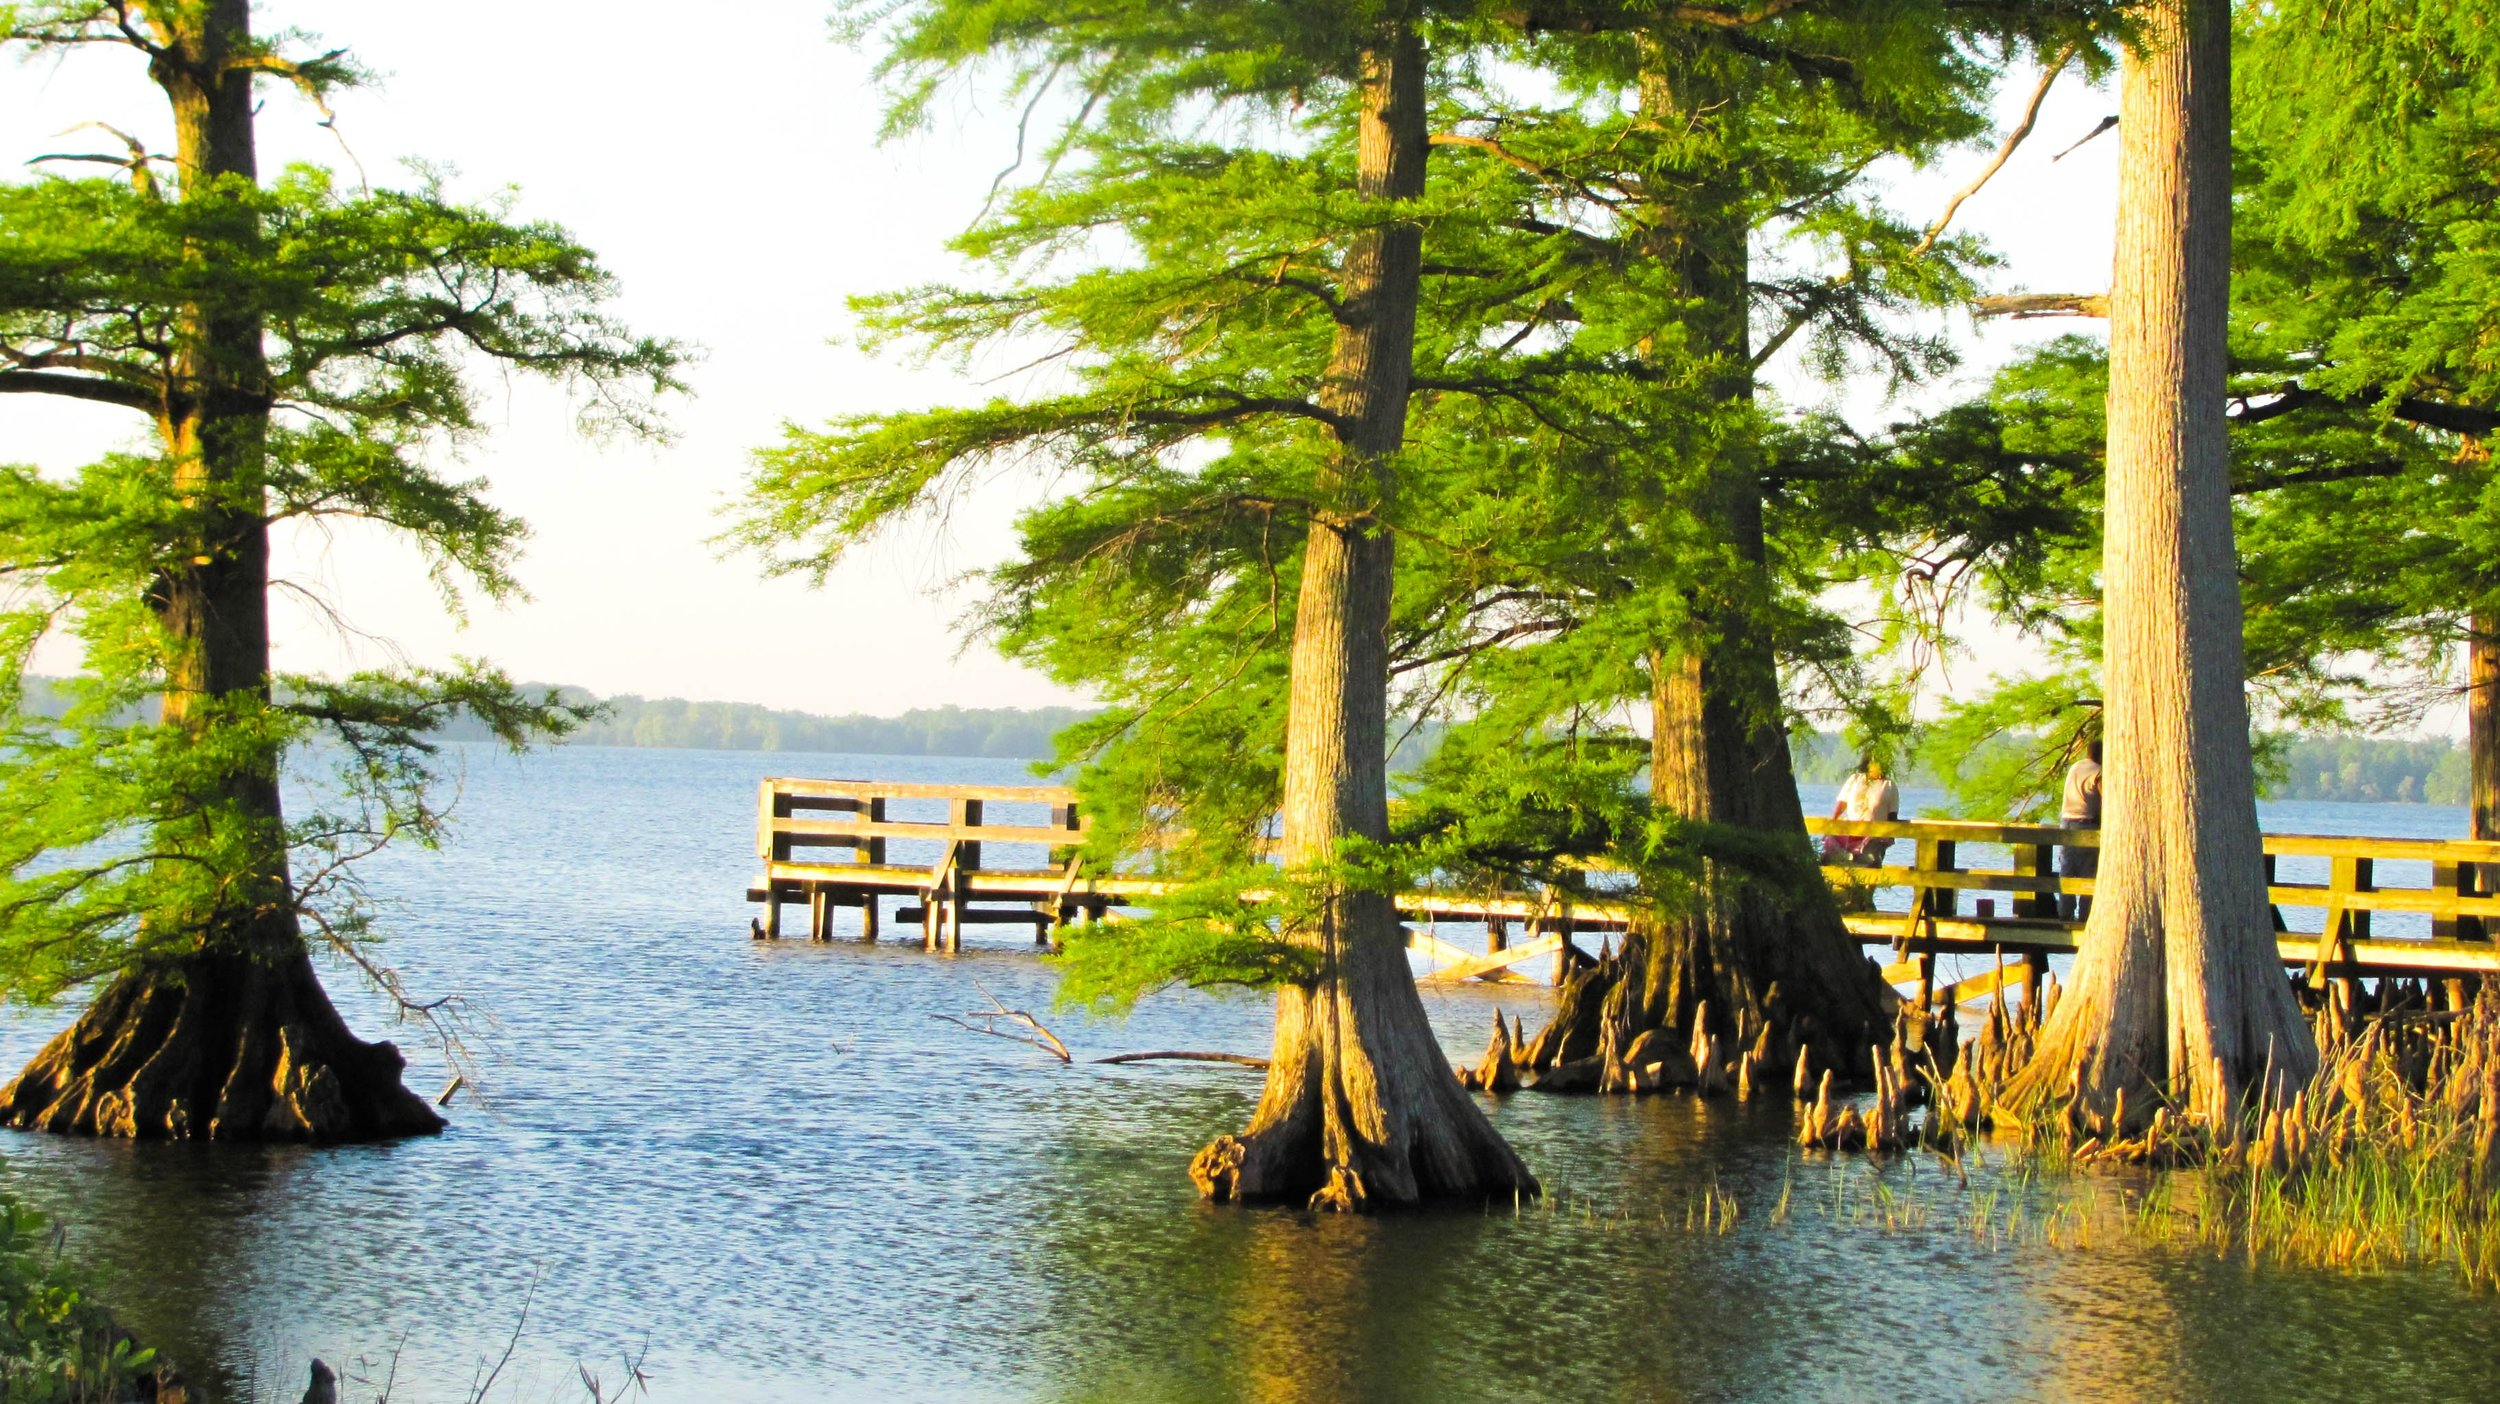 Reelfoot Lake State Park Tiptonville, Tennessee